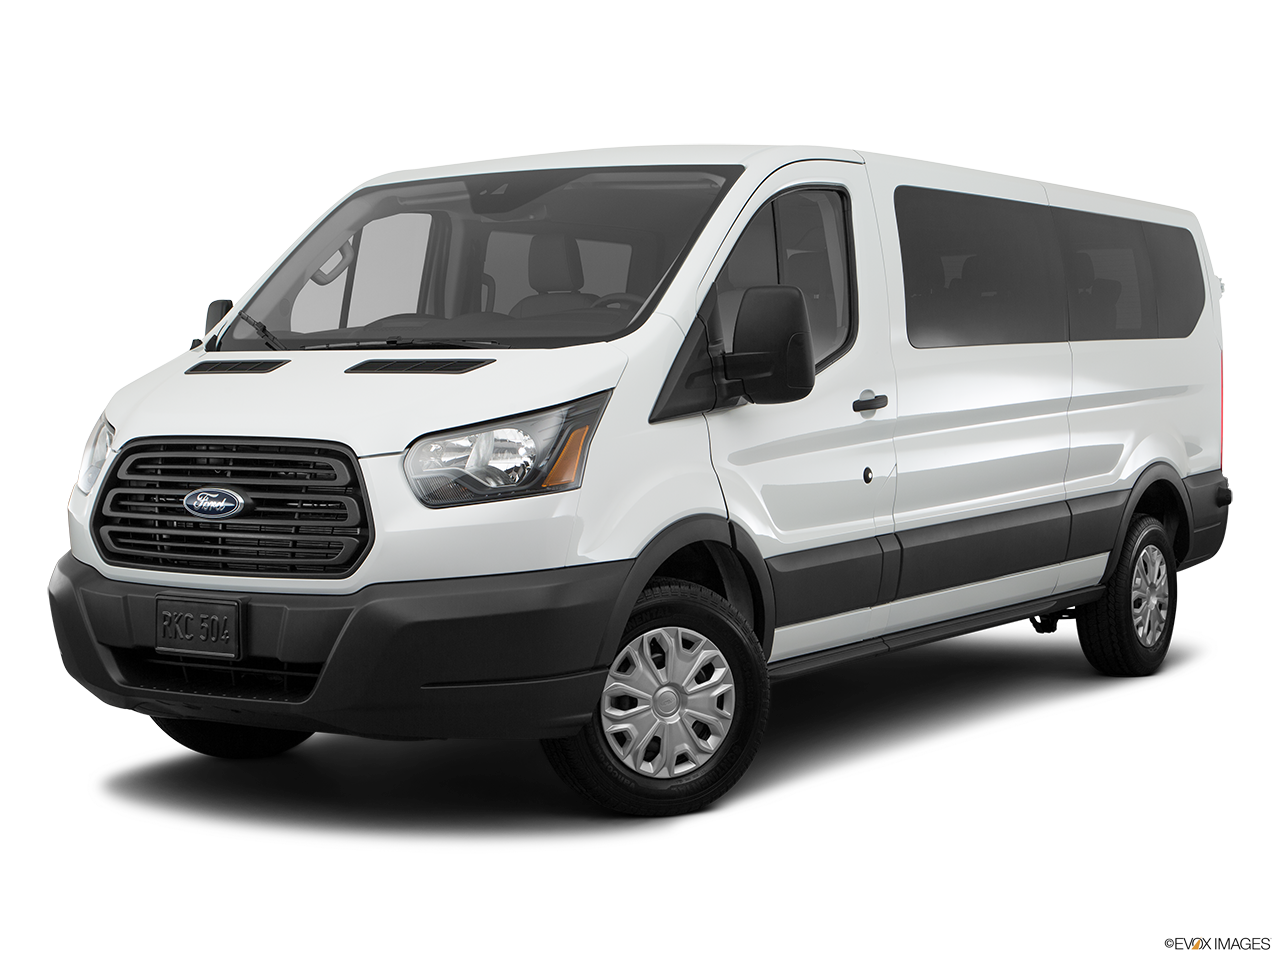 Test Drive A 2017 Ford Transit at Mossy Ford in San Diego